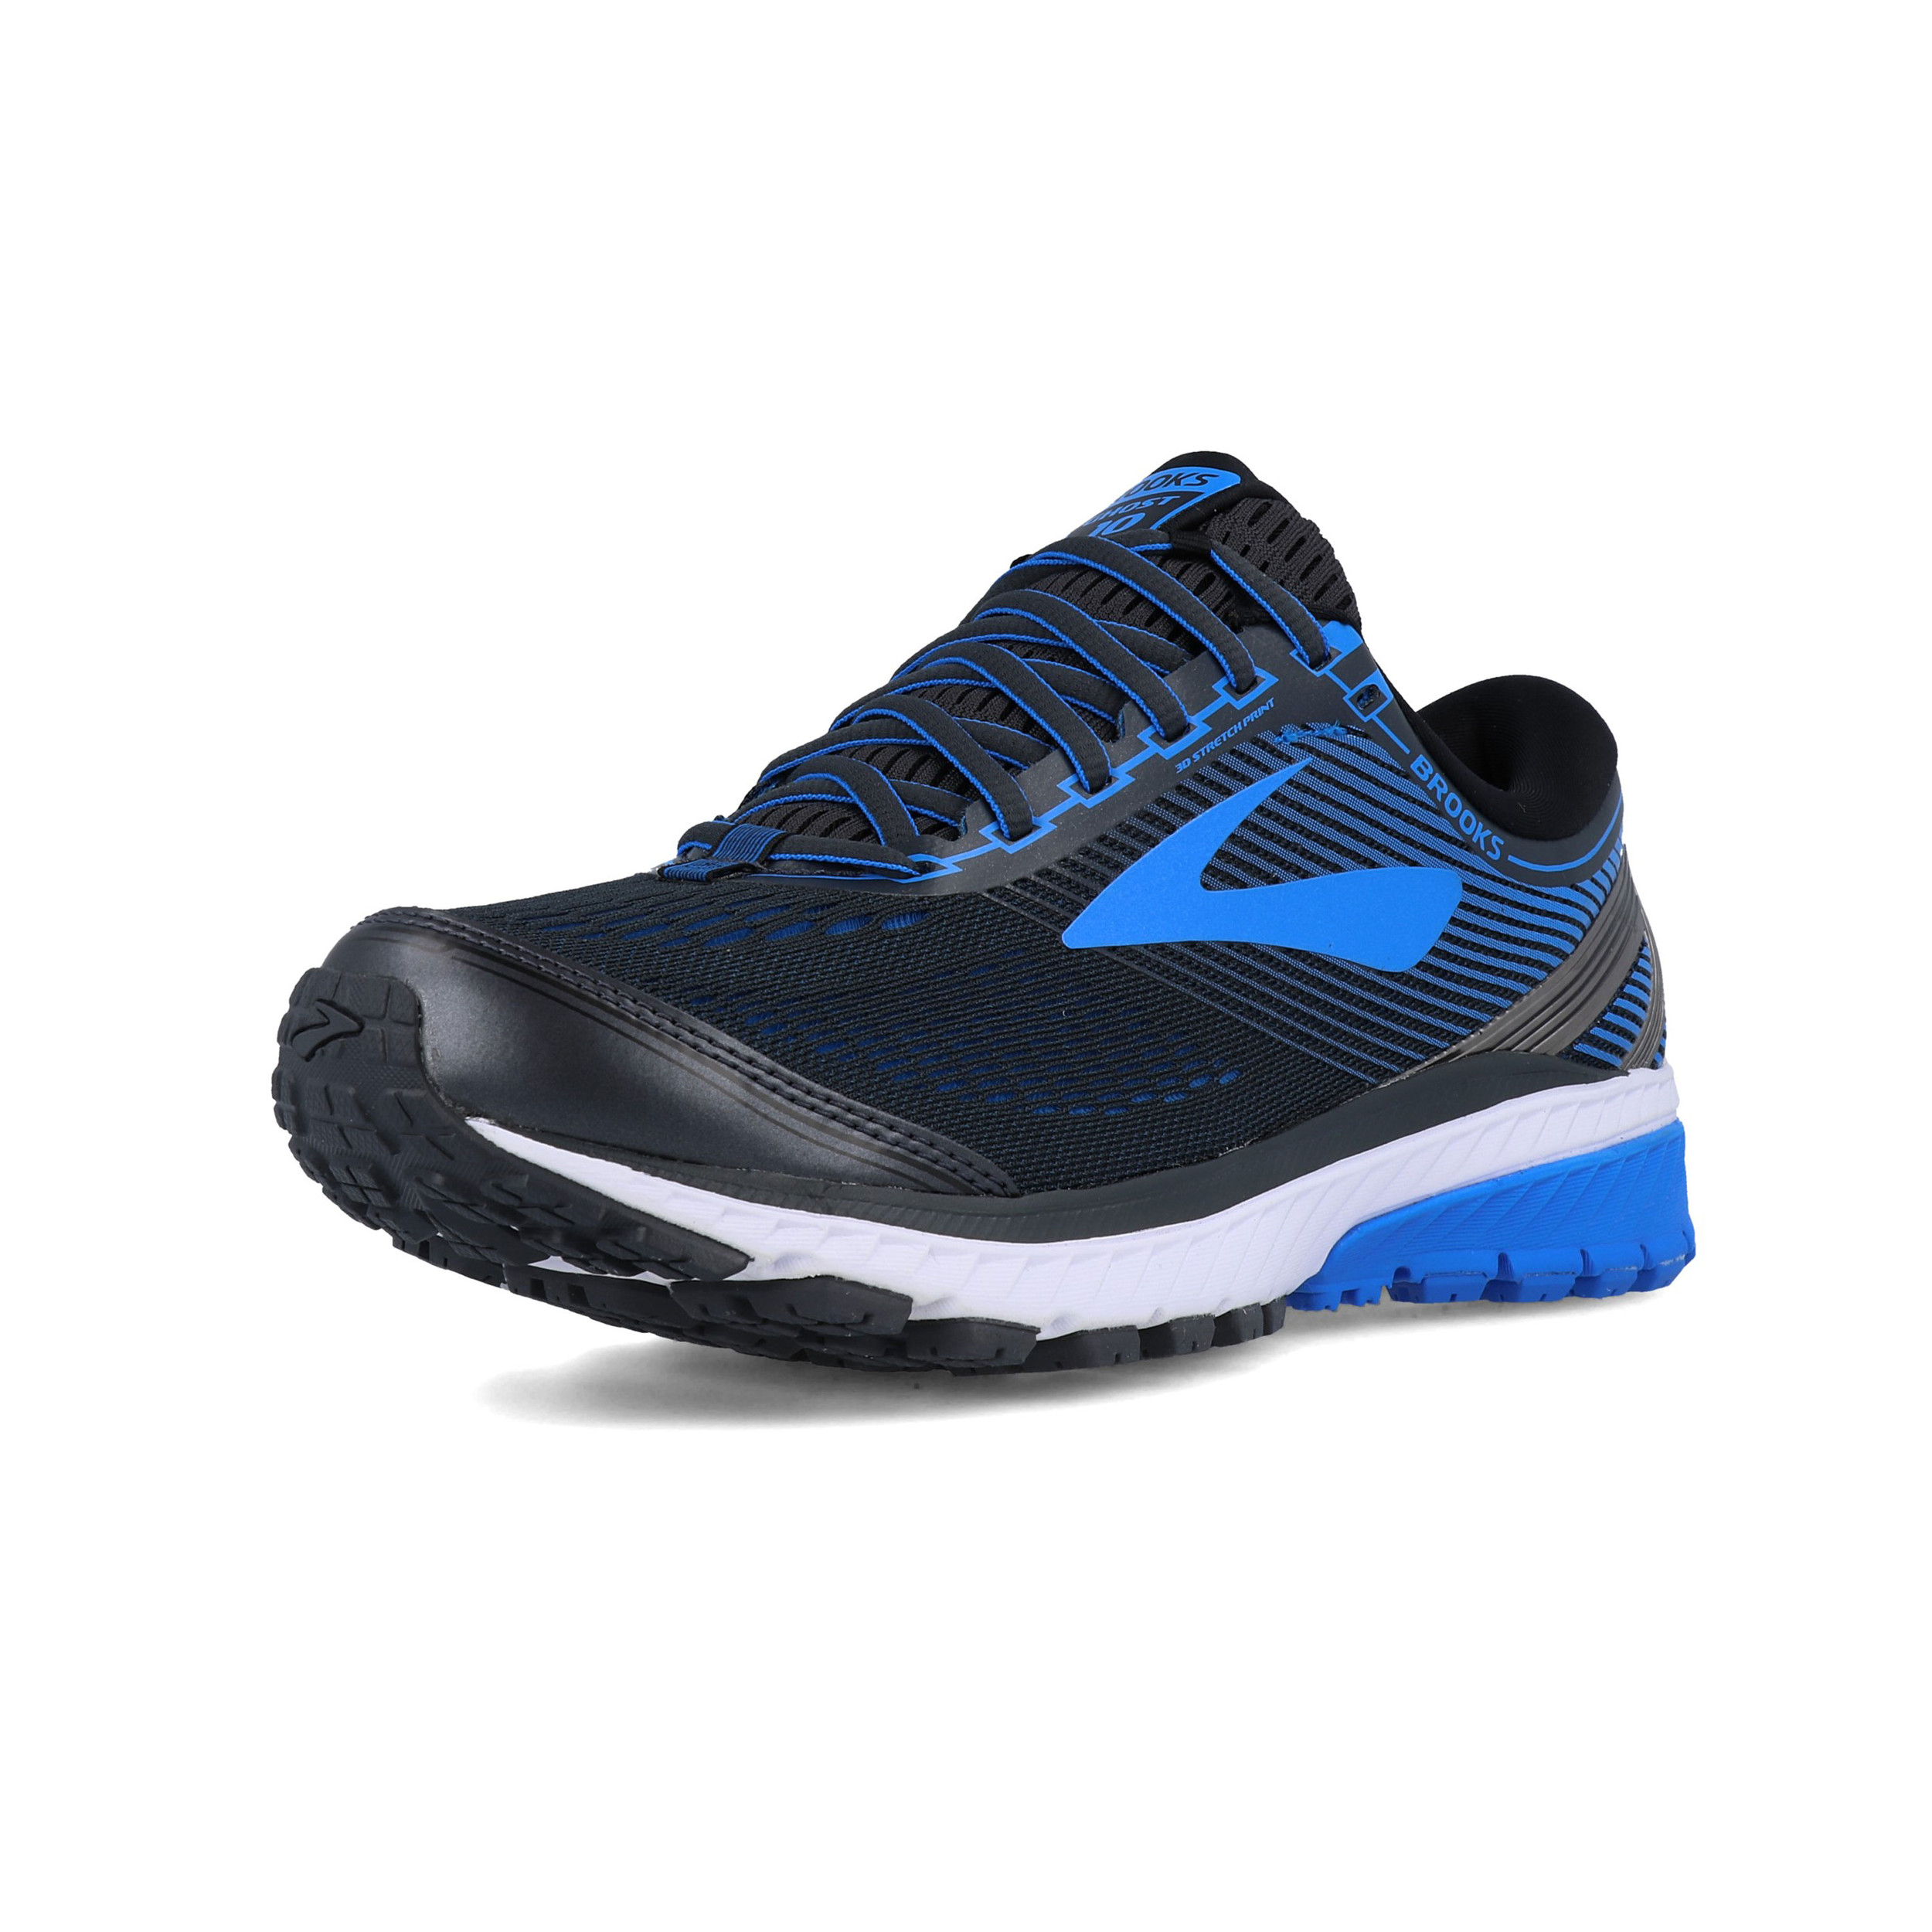 f0fbdb5e43f Details about Brooks Mens Ghost 10 Running Shoes Trainers Sneakers Blue  Navy Sports Breathable